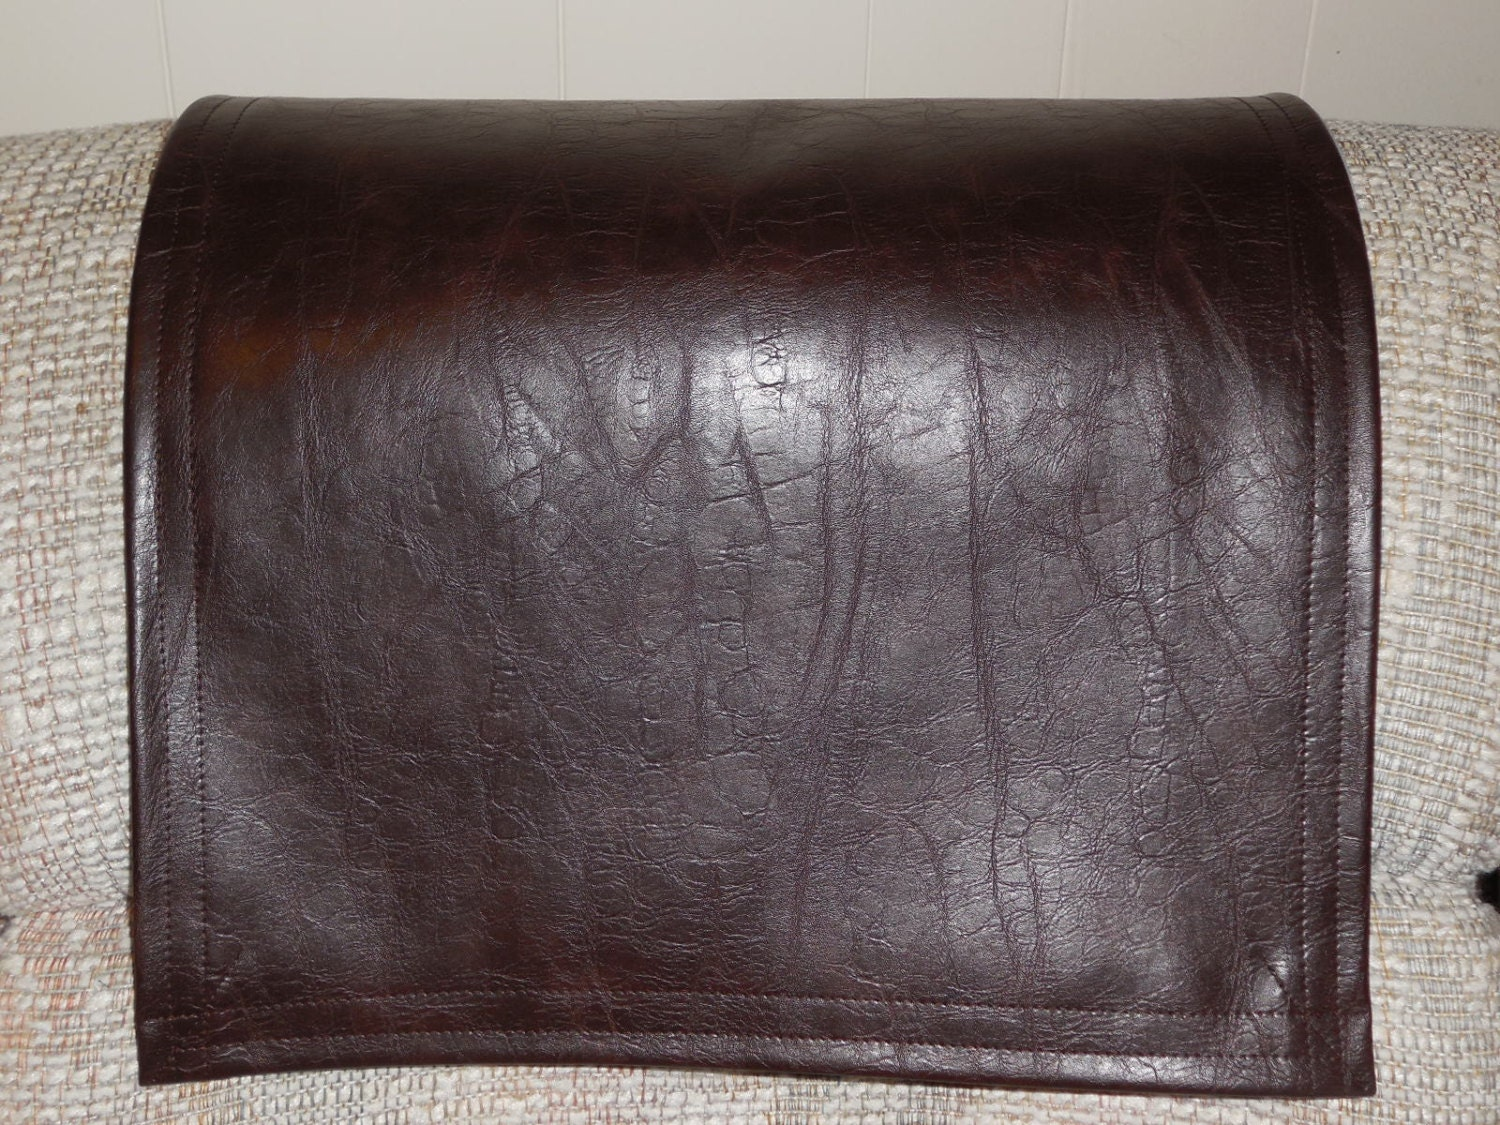 Recliner Cover Chair Head Pad Furniture Protector Vinyl : ilfullxfull879436900q7d4 from www.etsy.com size 1500 x 1125 jpeg 558kB